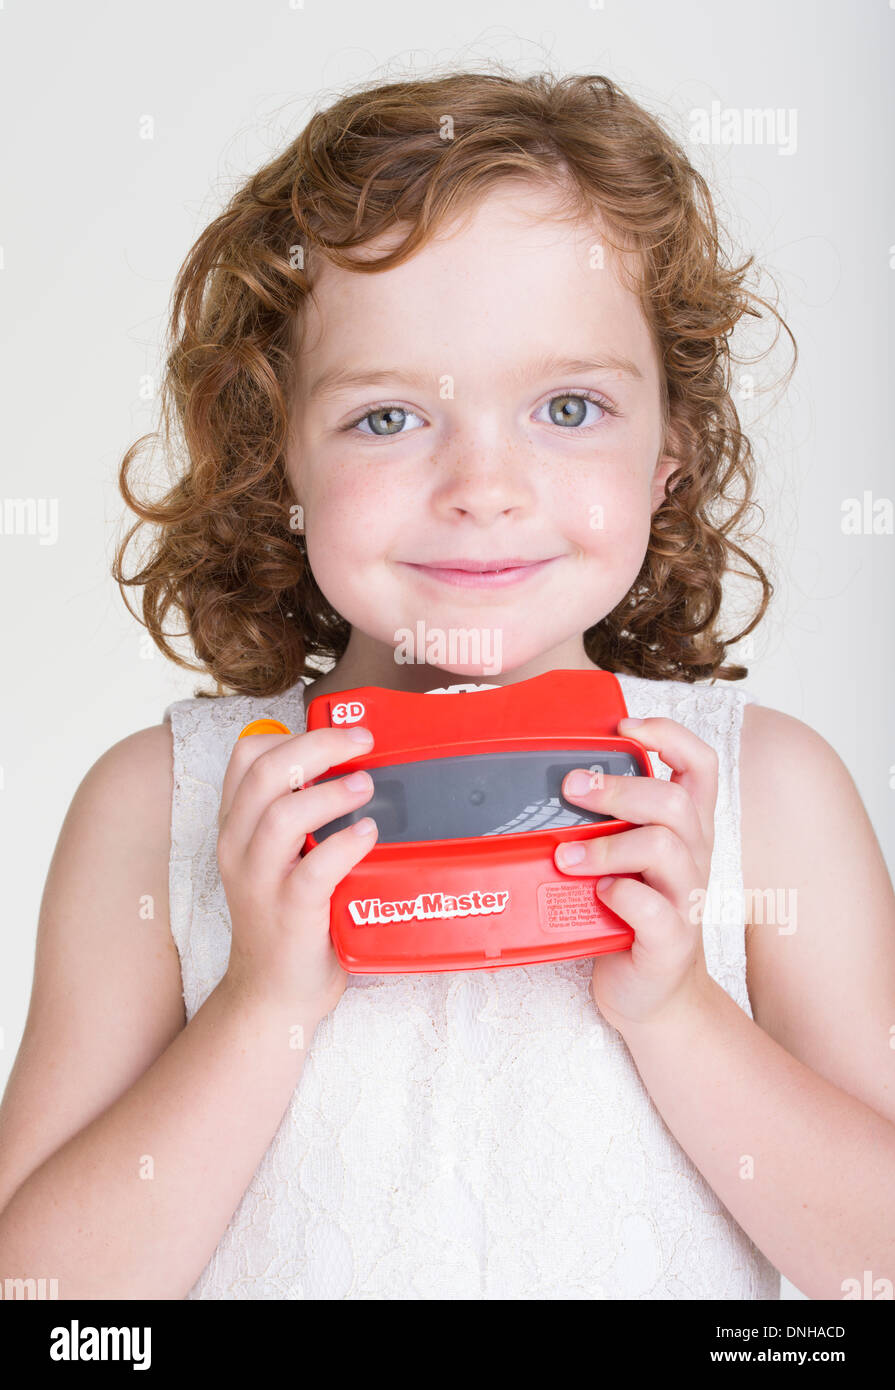 Young girl with View-Master stereoscopic 3-D 3D viewer Stock Photo